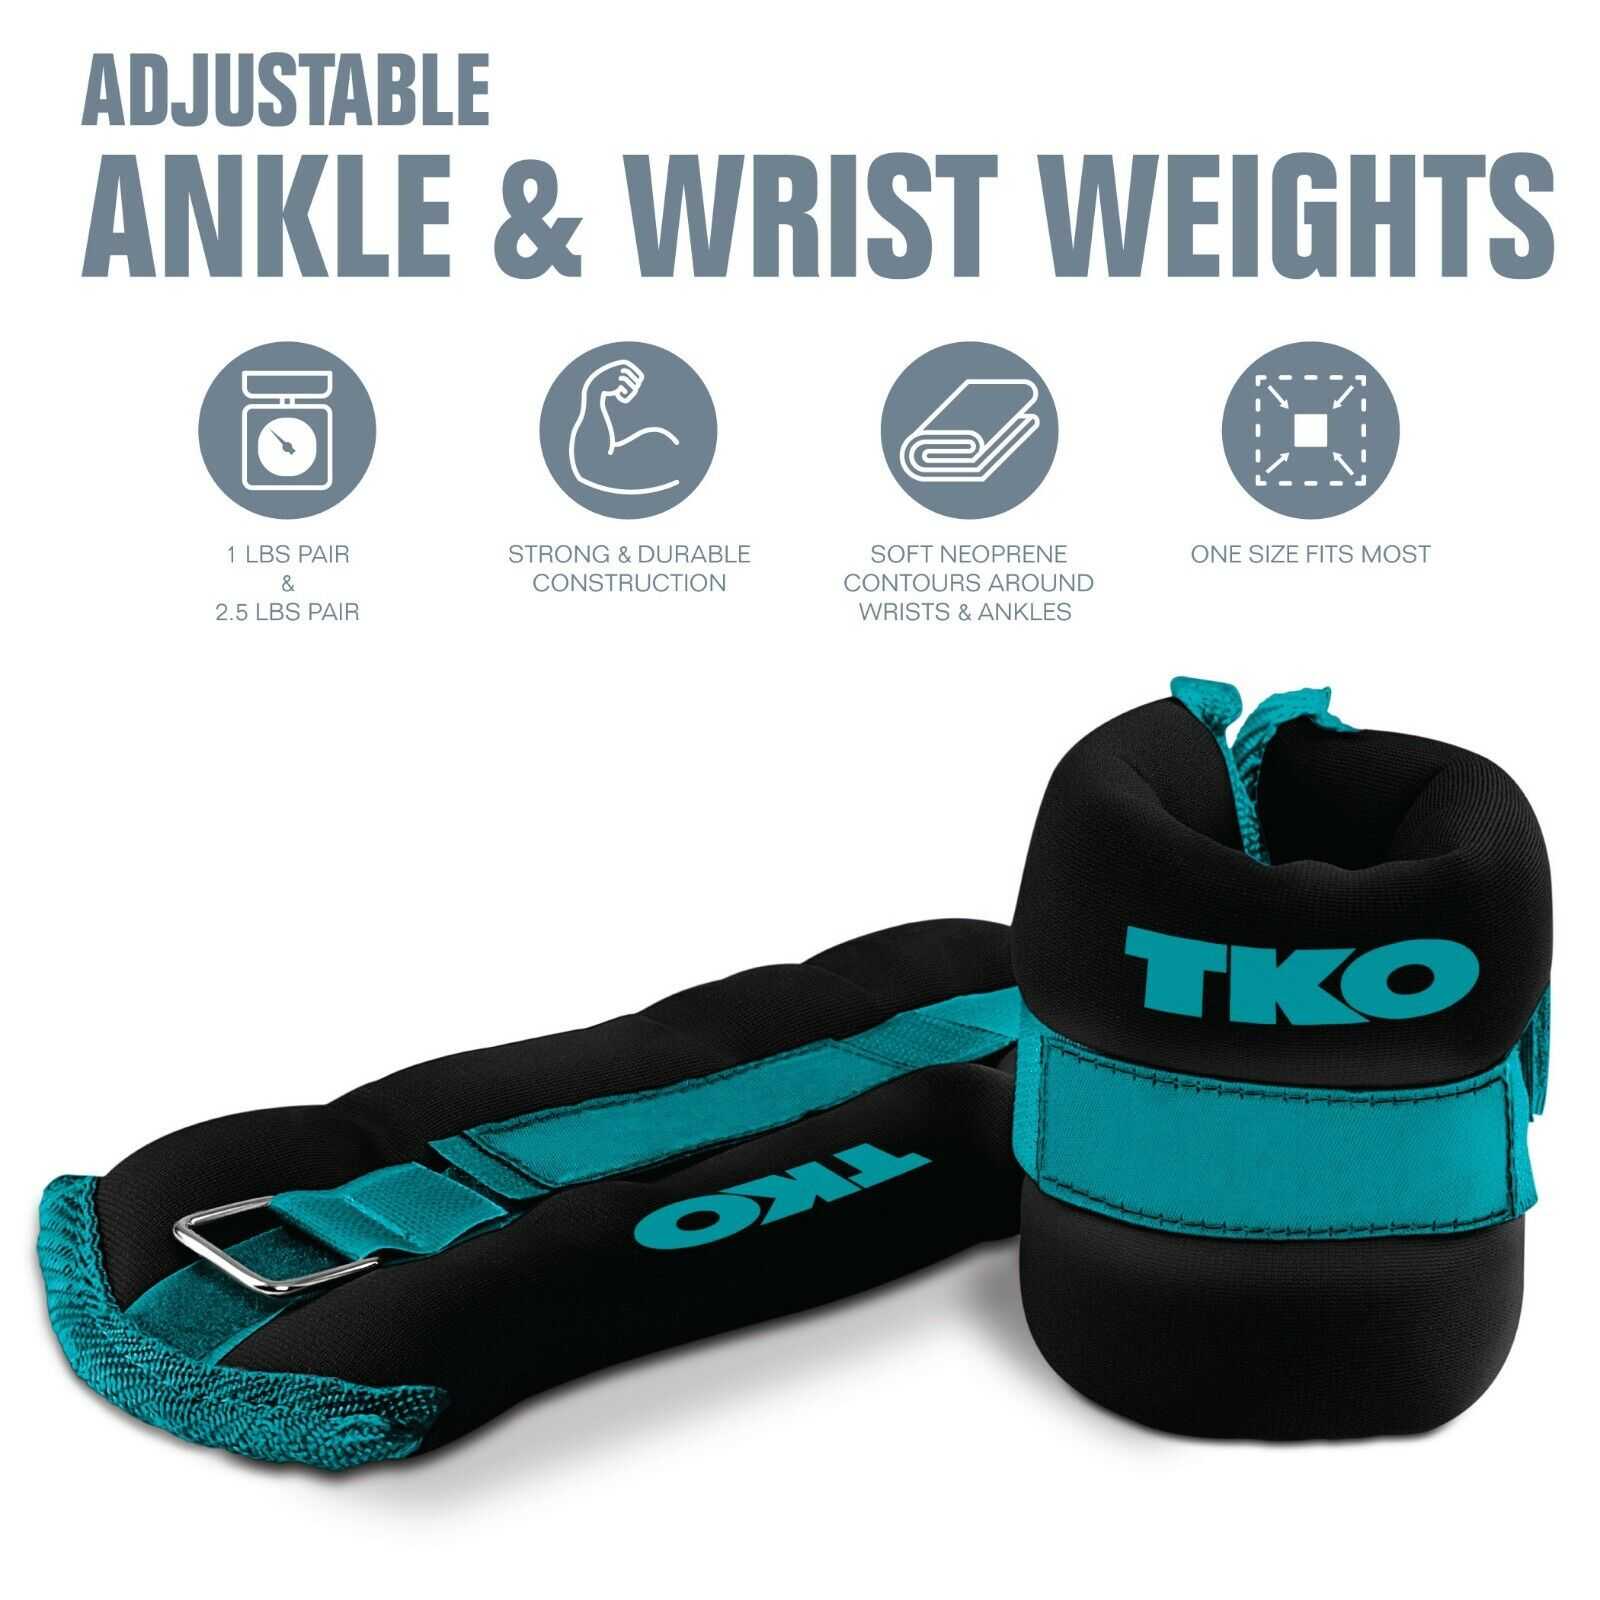 ankle wrist weights in 2 lb or